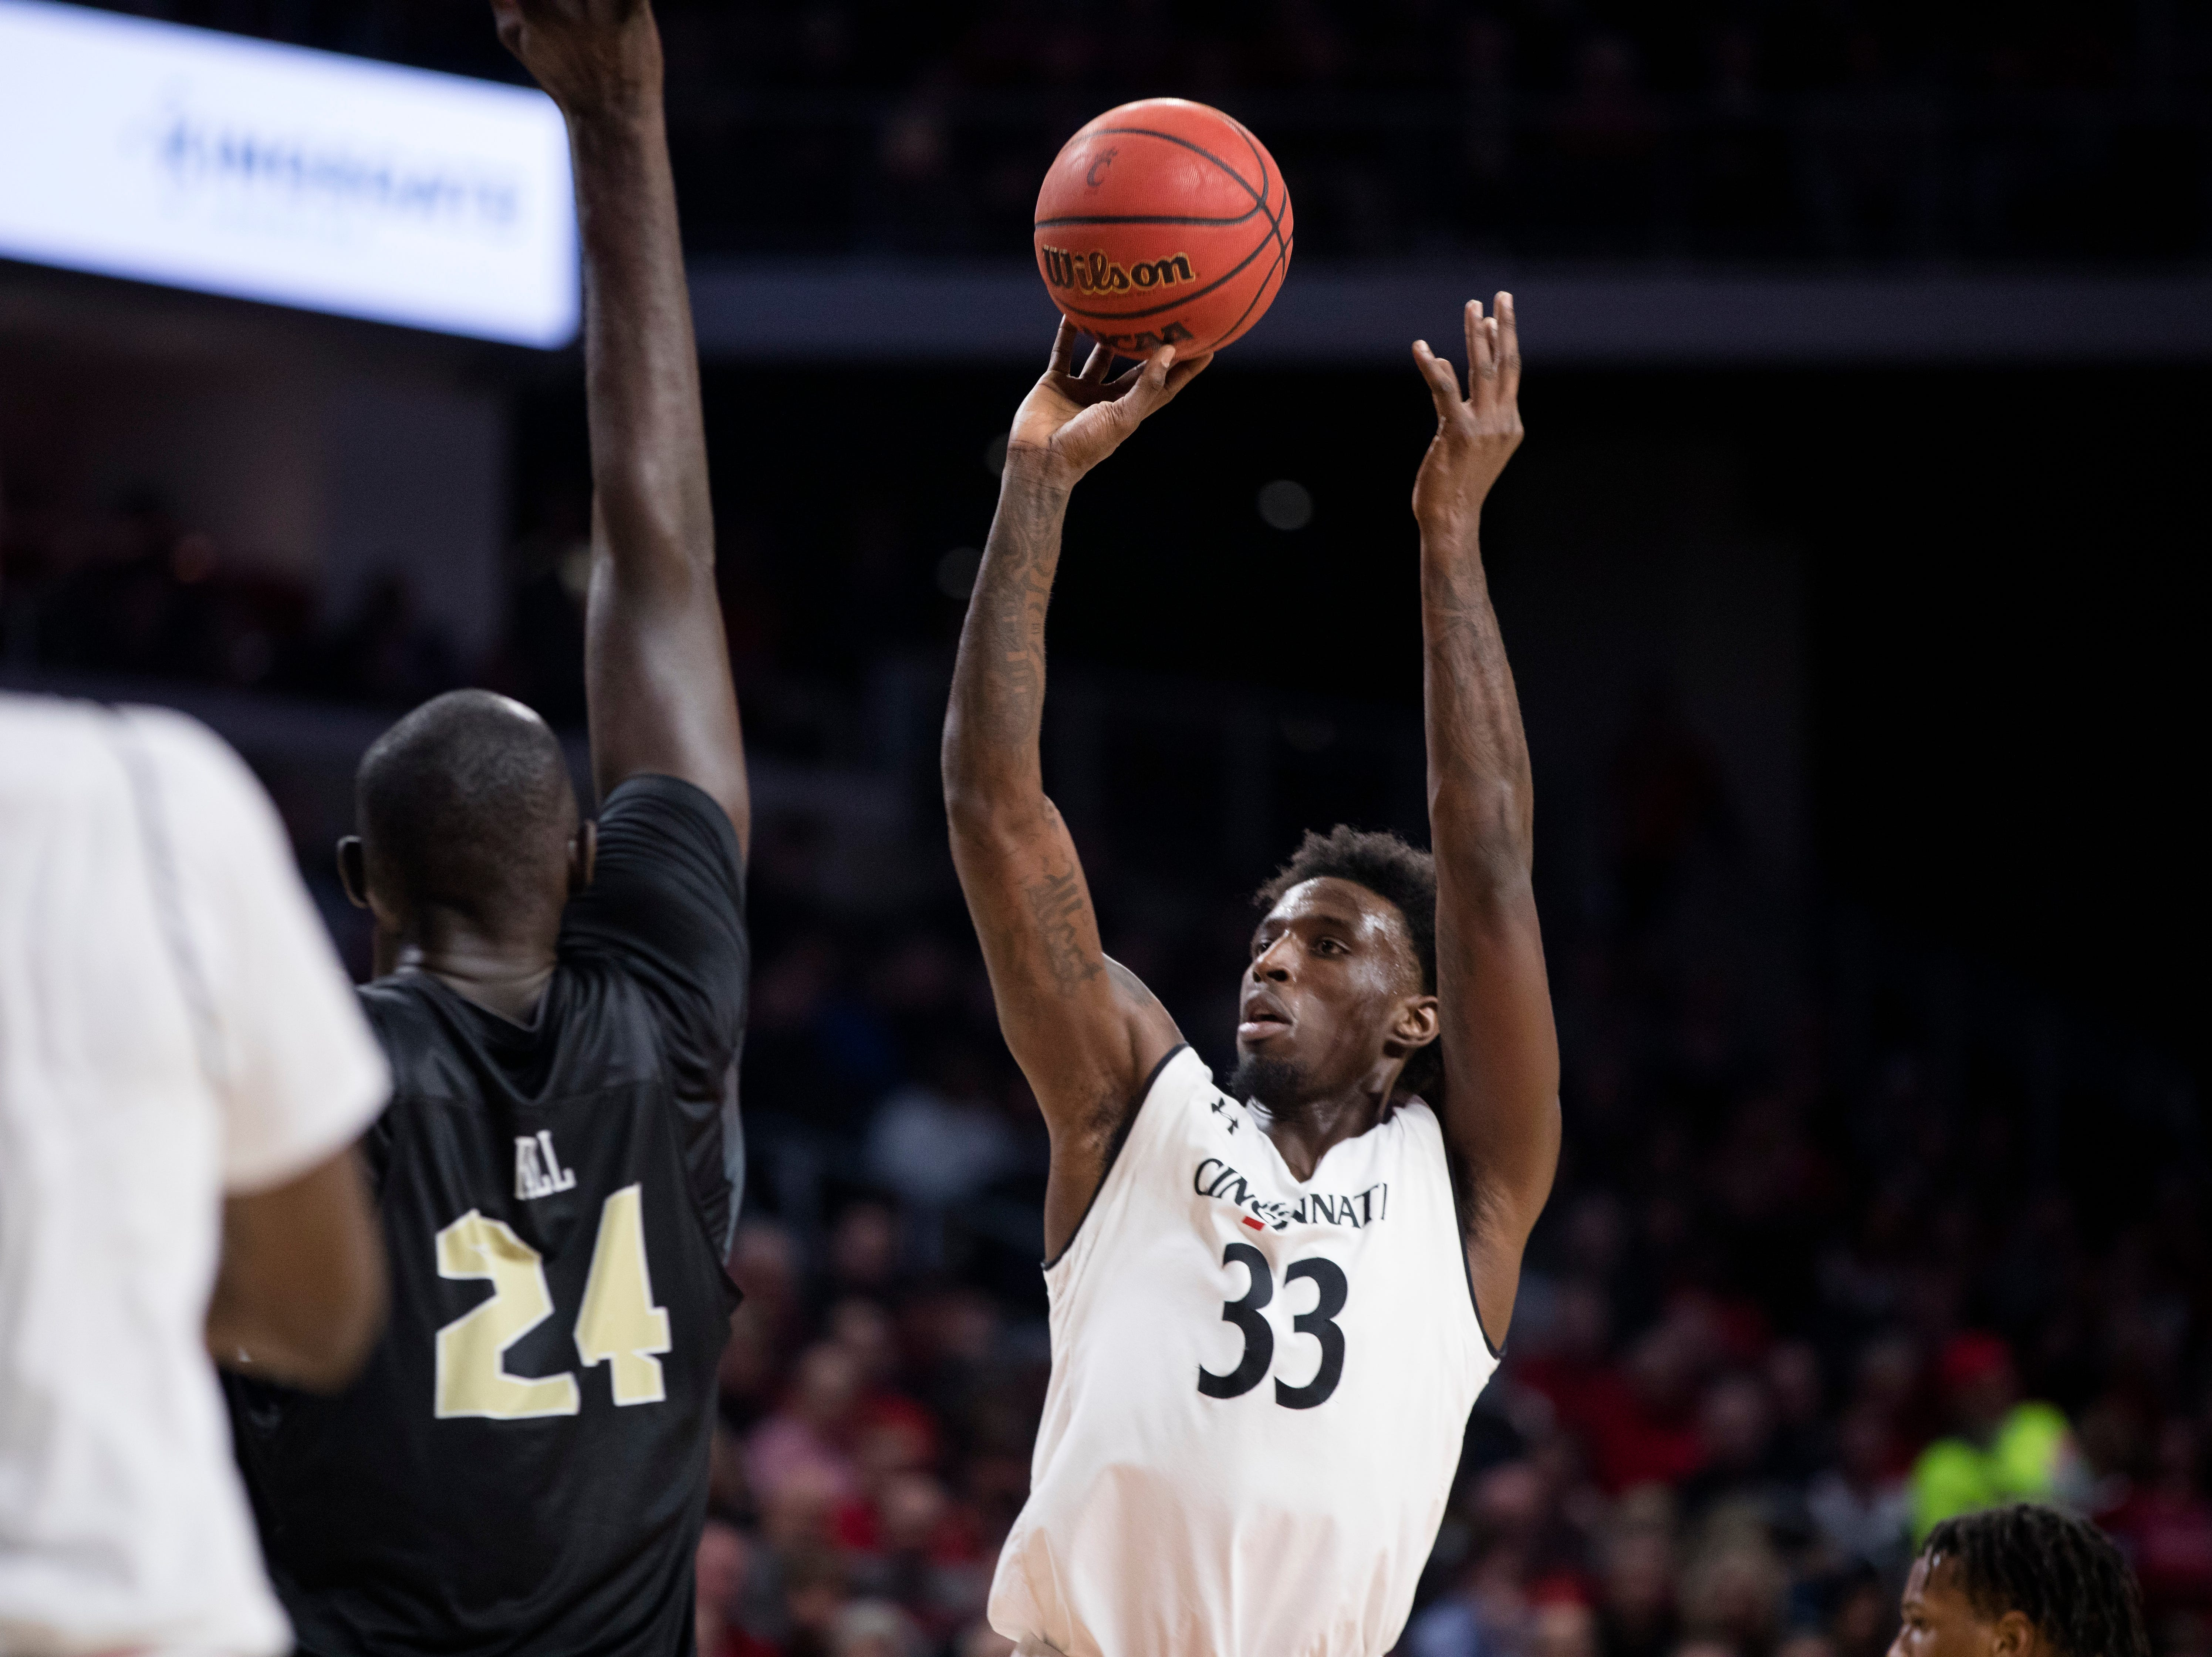 Cincinnati Bearcats center Nysier Brooks (33) shoots over UCF Knights center Tacko Fall (24) in the second half of the NCAA men's basketball game between Cincinnati Bearcats and UCF Knights on Thursday, Feb. 21, 2019, at Fifth Third Arena in Cincinnati.